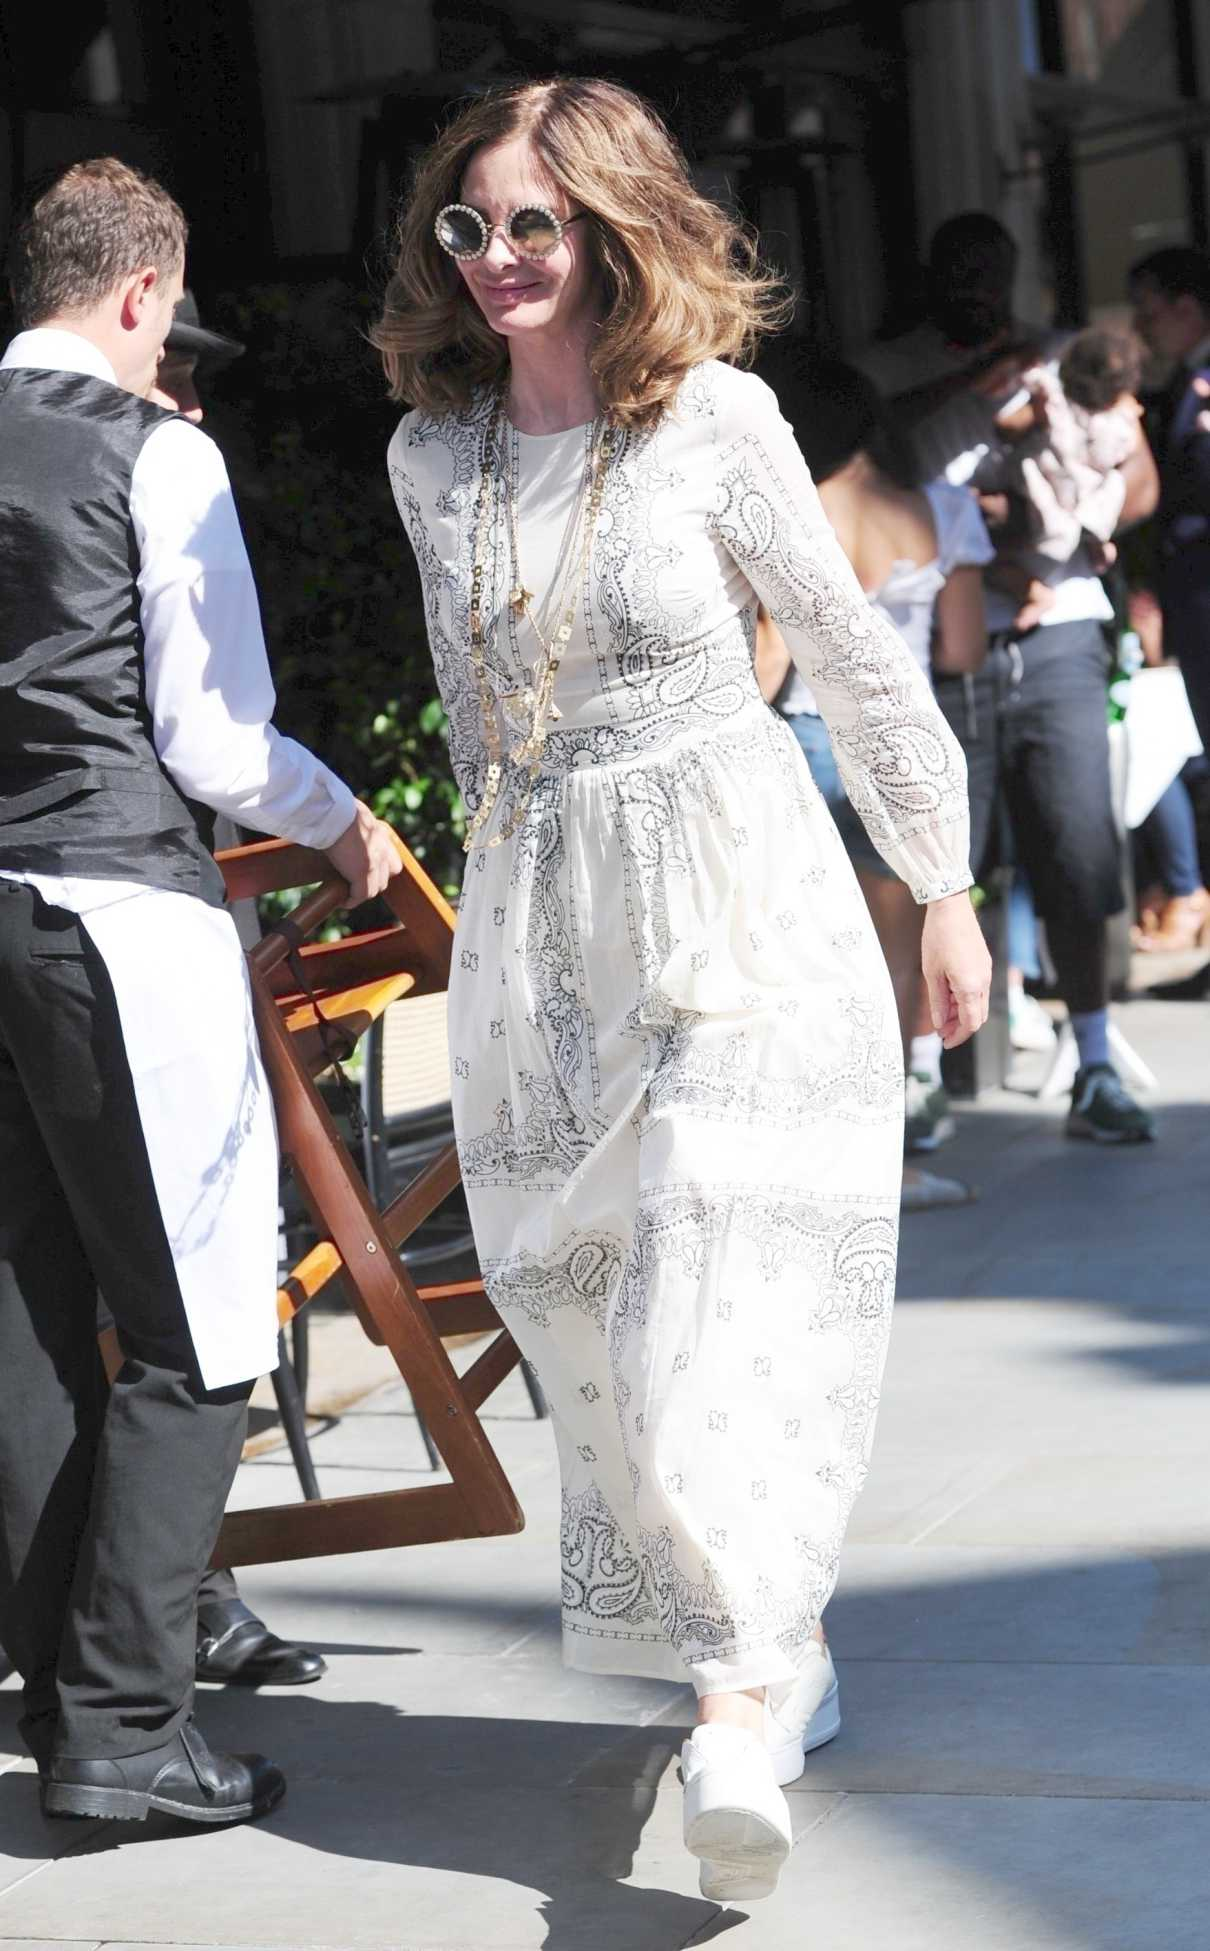 Trinny Woodall in a White Dress